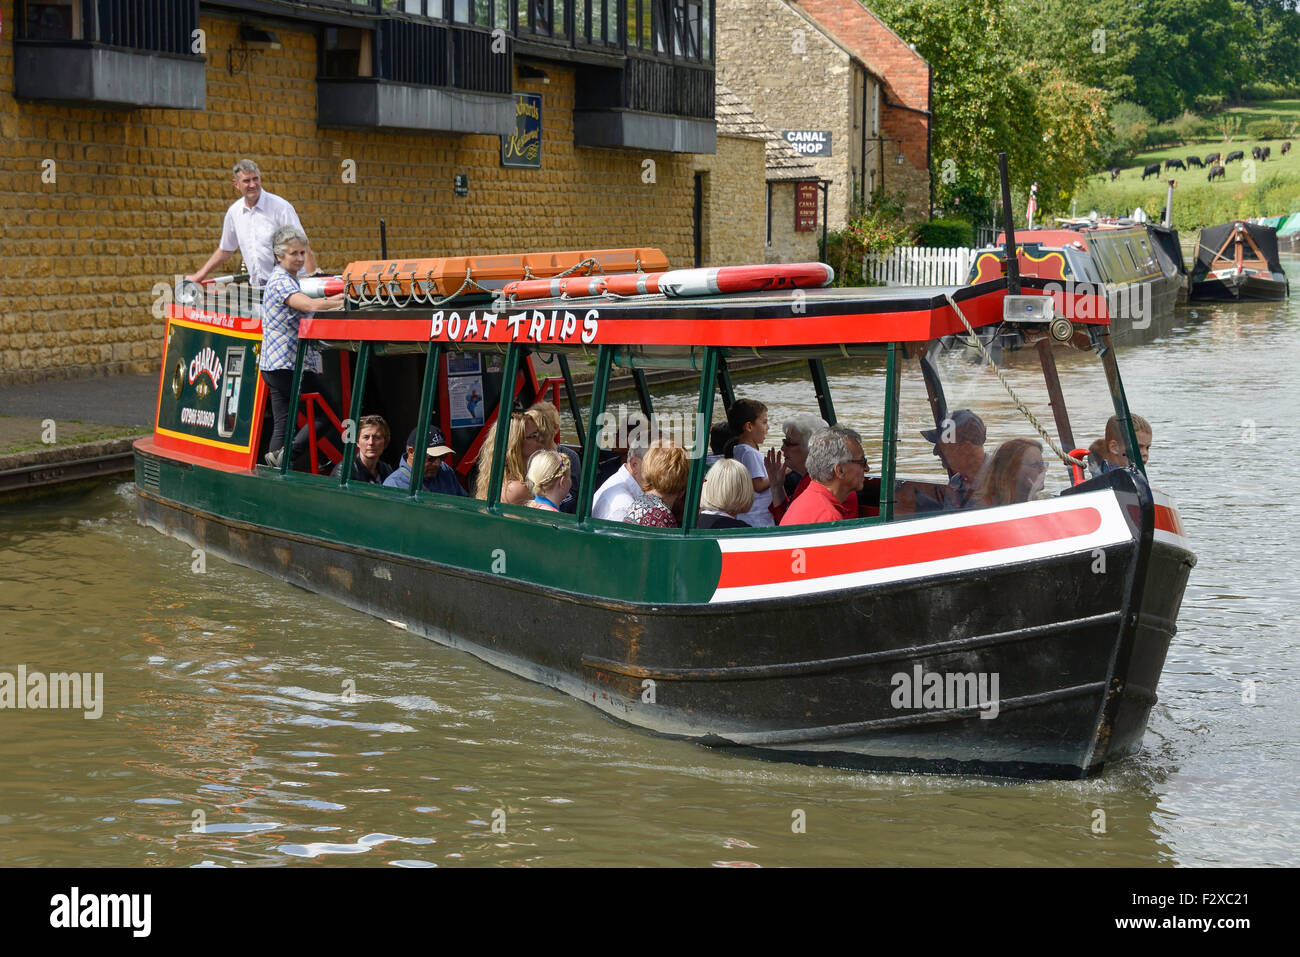 Cruise boat on Grand Union Canal, Stoke Bruerne, Northamptonshire, England, United Kingdom - Stock Image